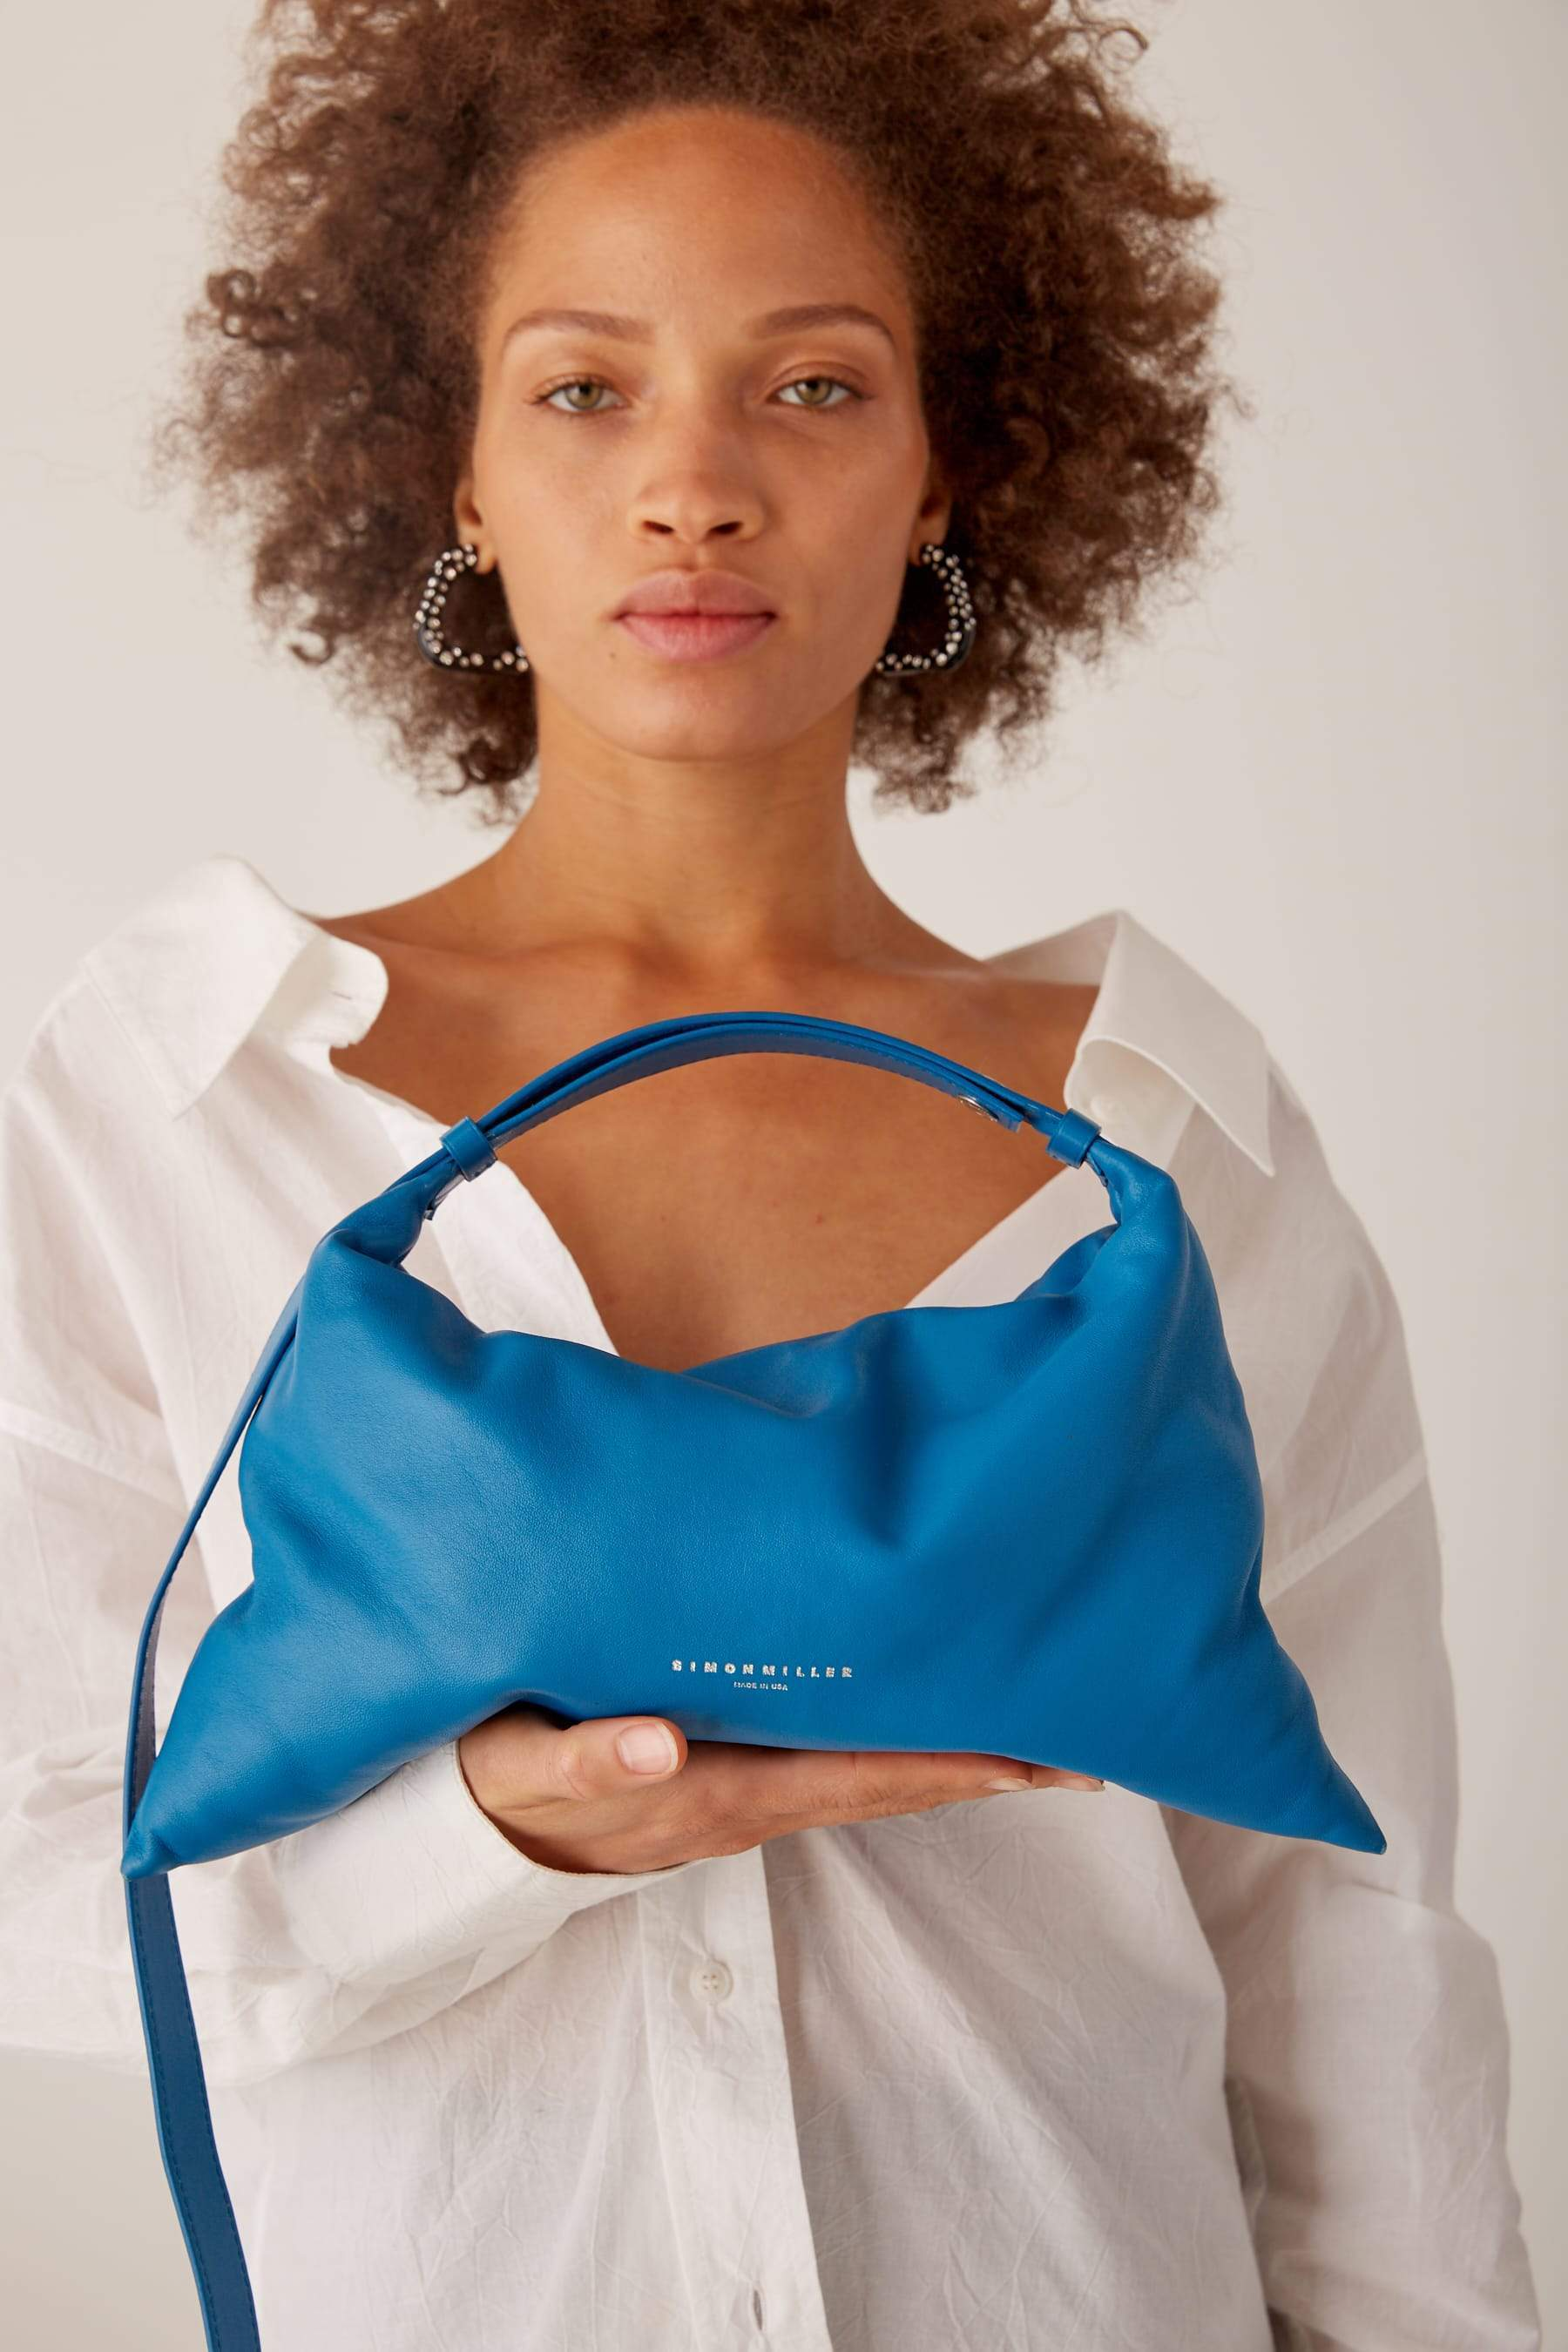 Puffin Bag in Soaring Blue by Simon Miller - 5